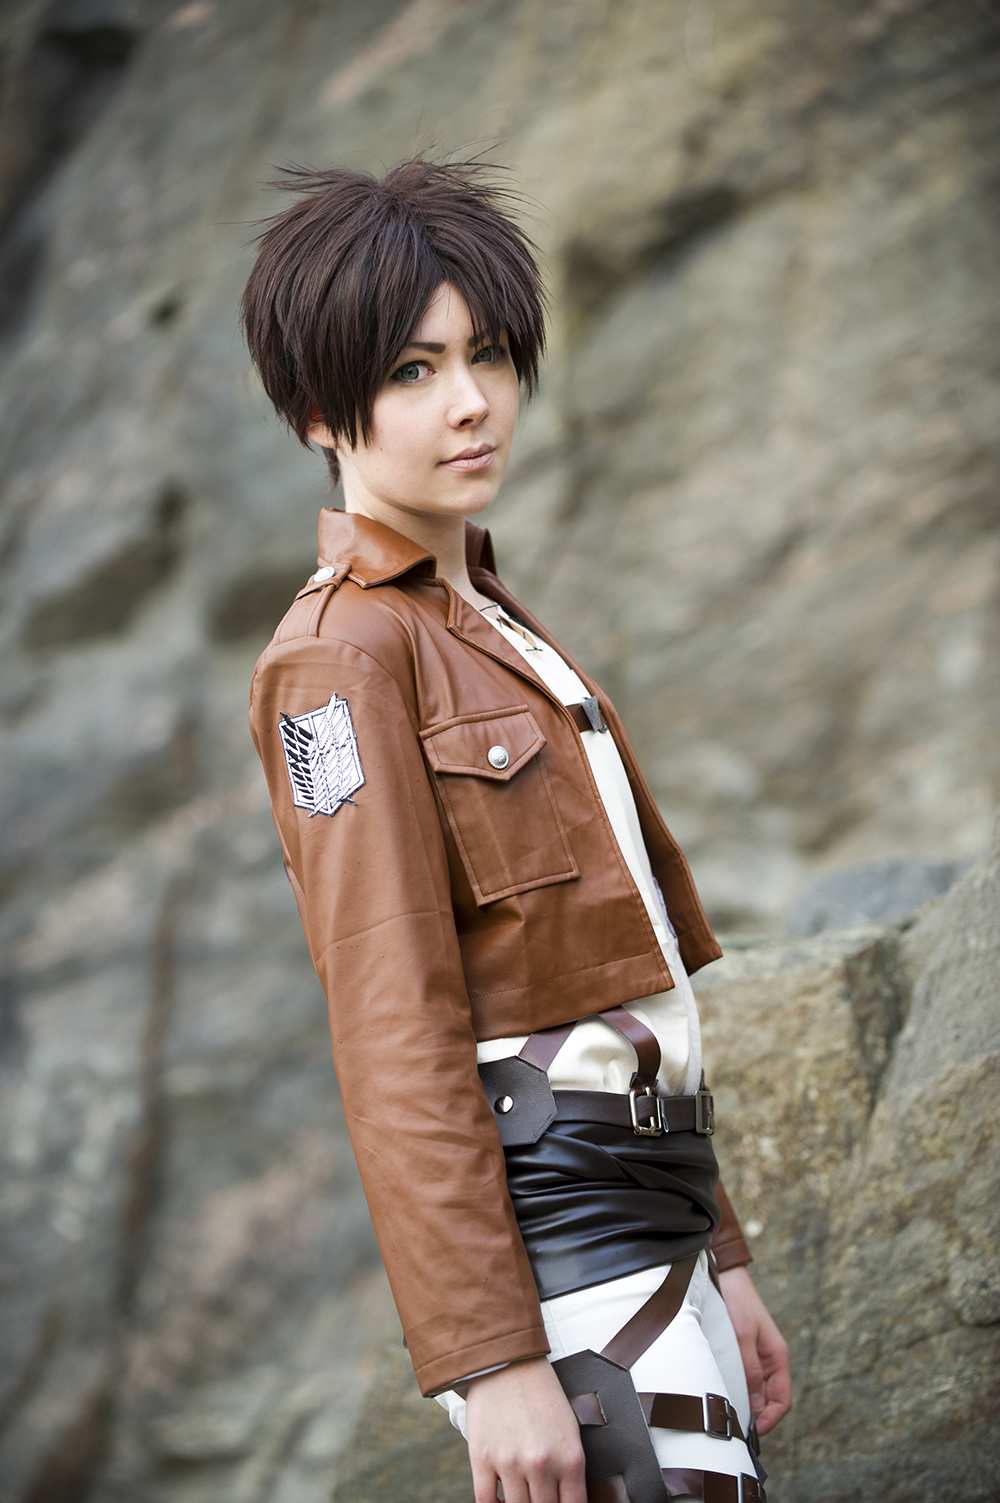 Eren Jaeger by Mimixum on DeviantArt